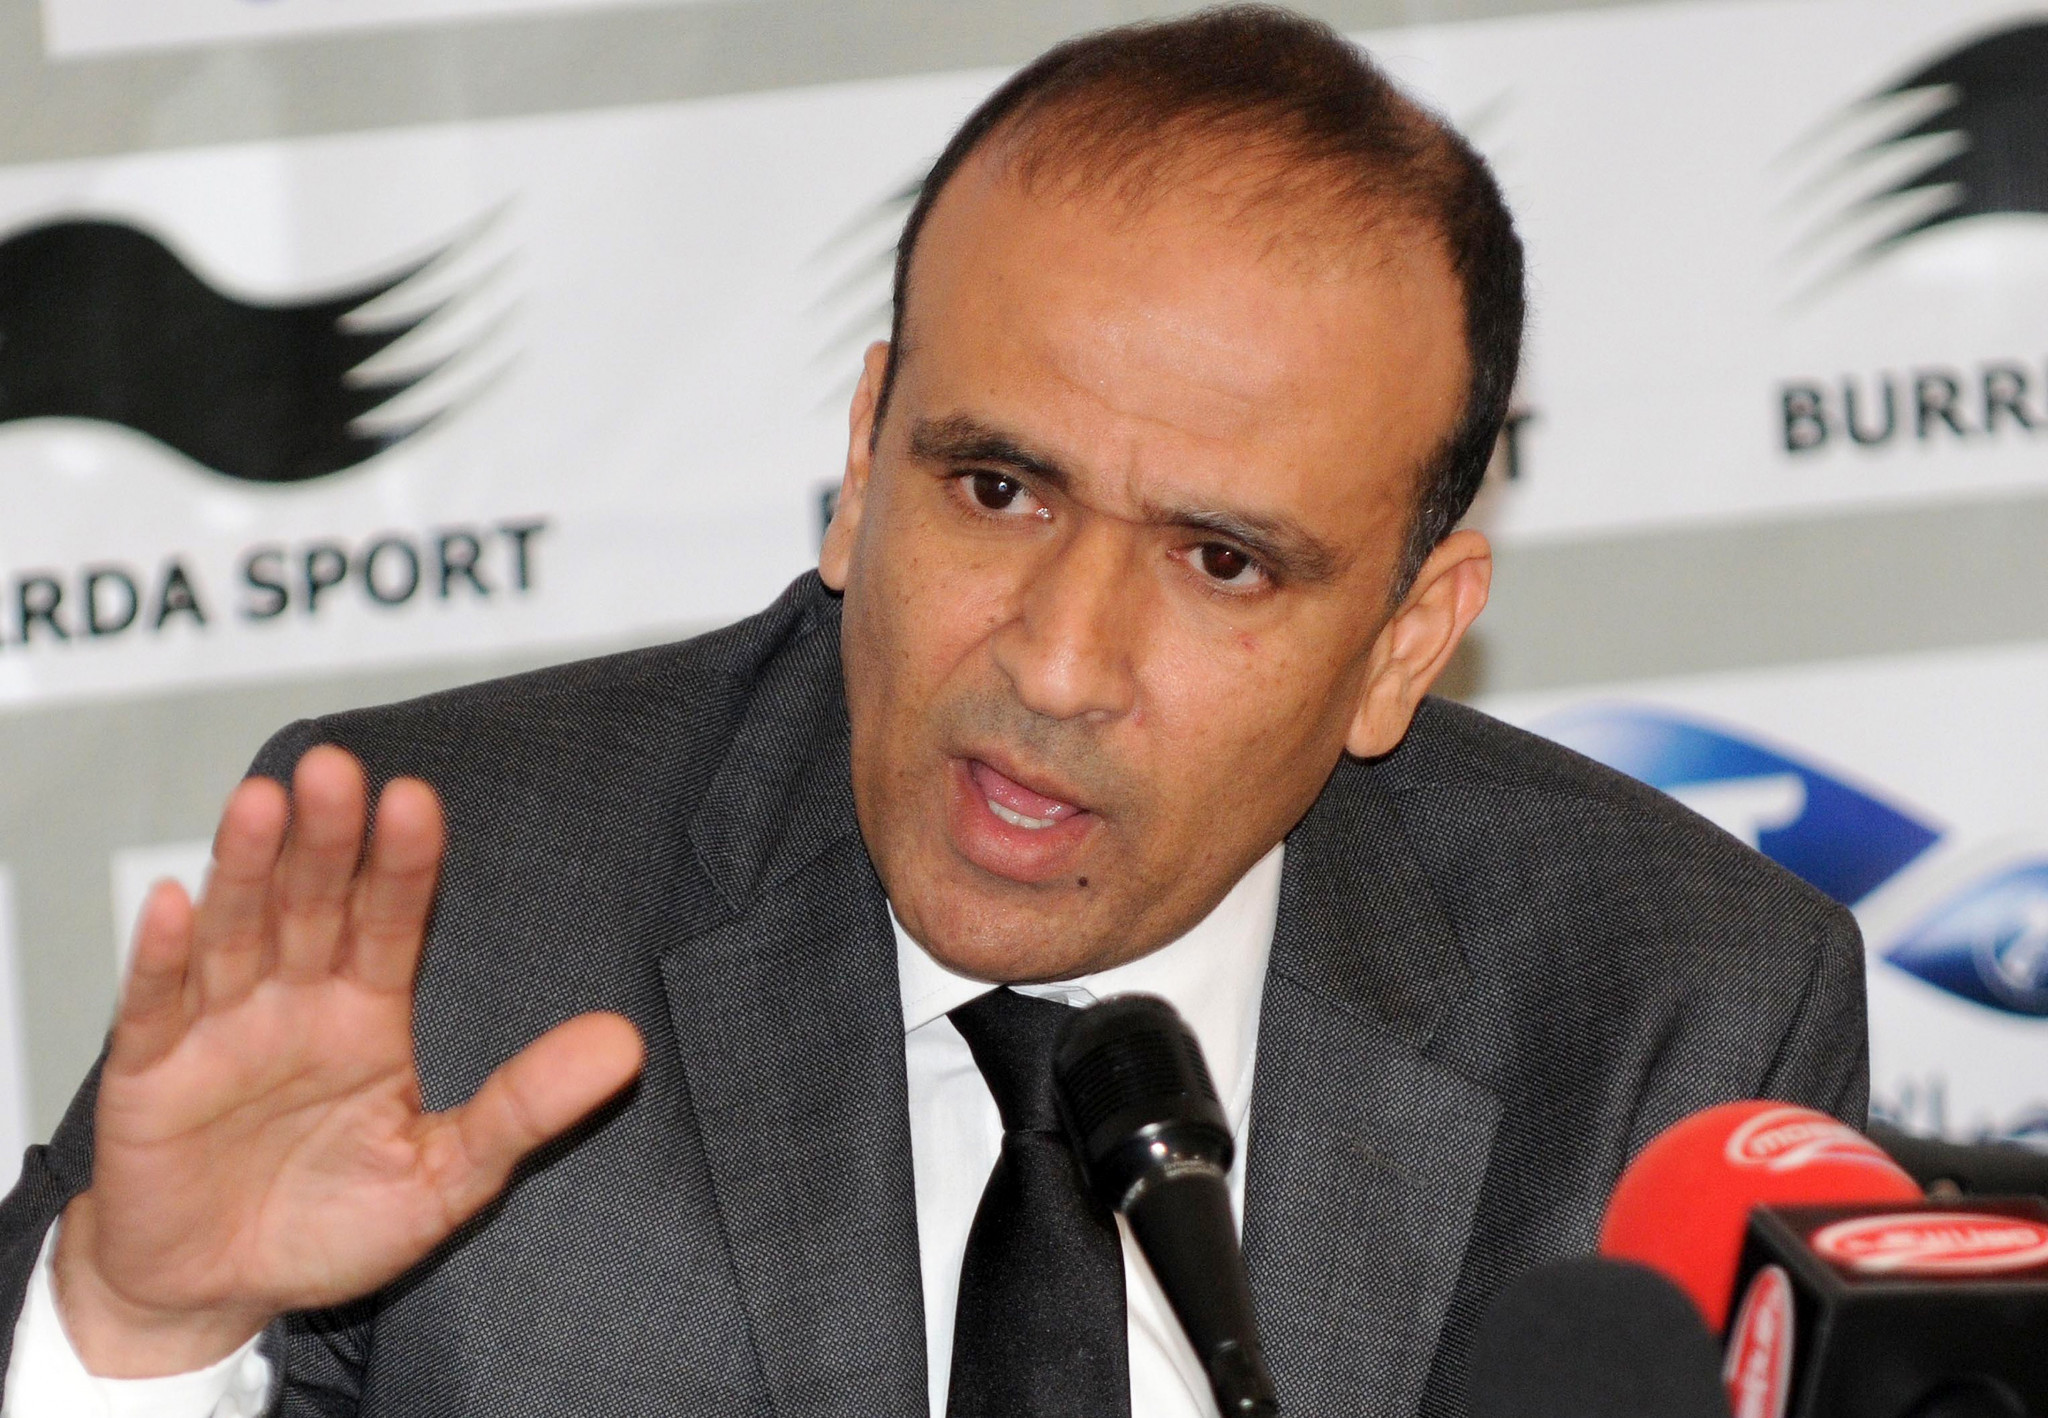 Wadie Jary, President of the Tunisian Football Federation, could challenge Ahmad at next year's election